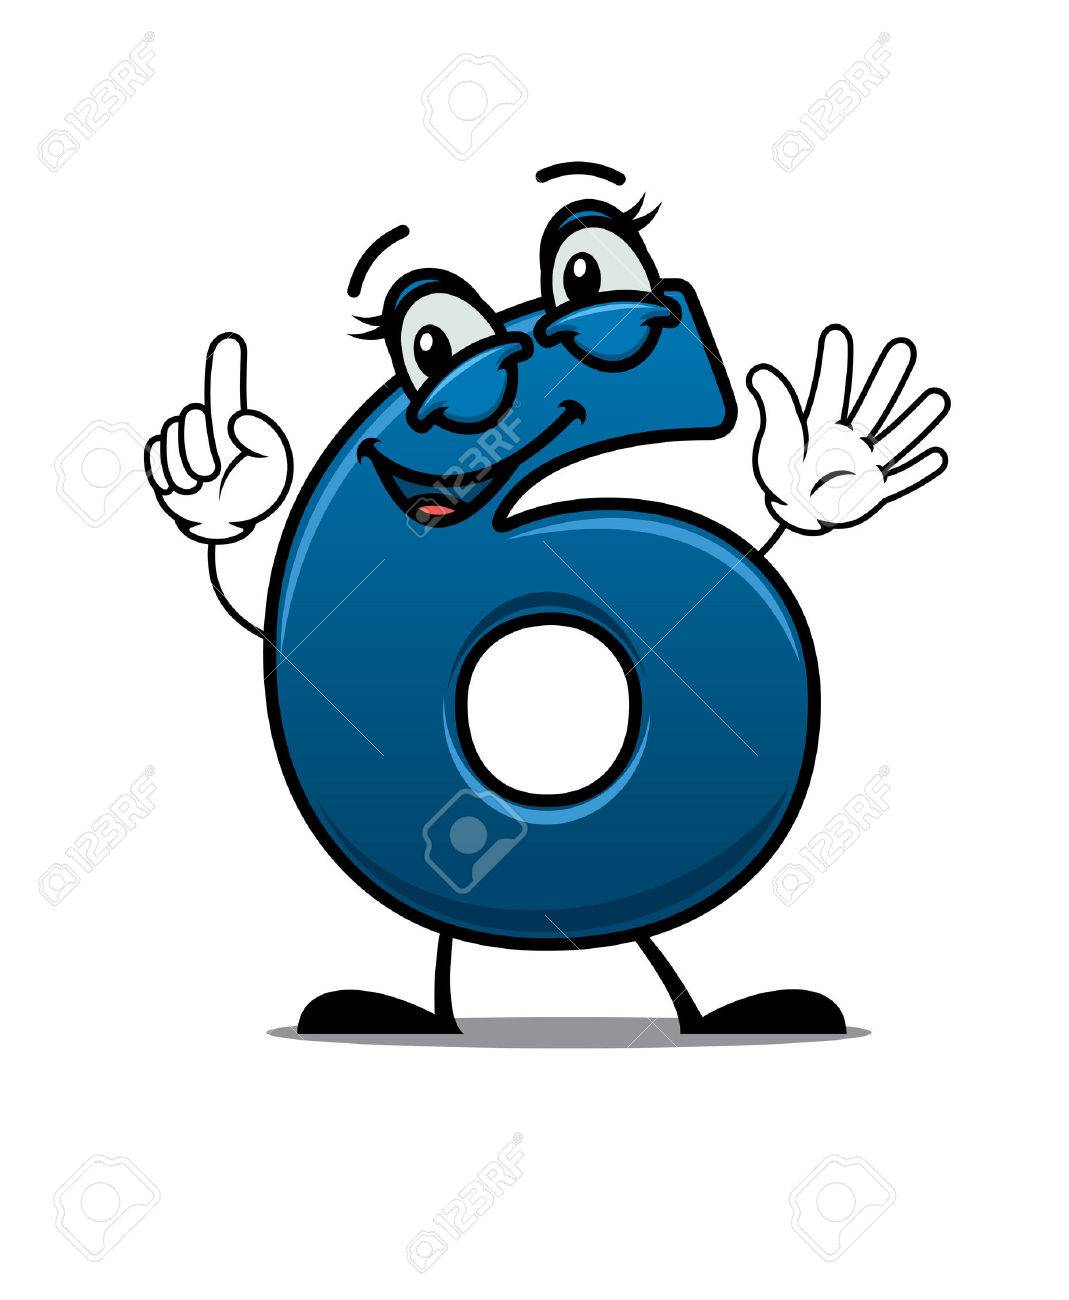 waving happy number 6 with an adorable smile raising a finger for attention cartoon vector